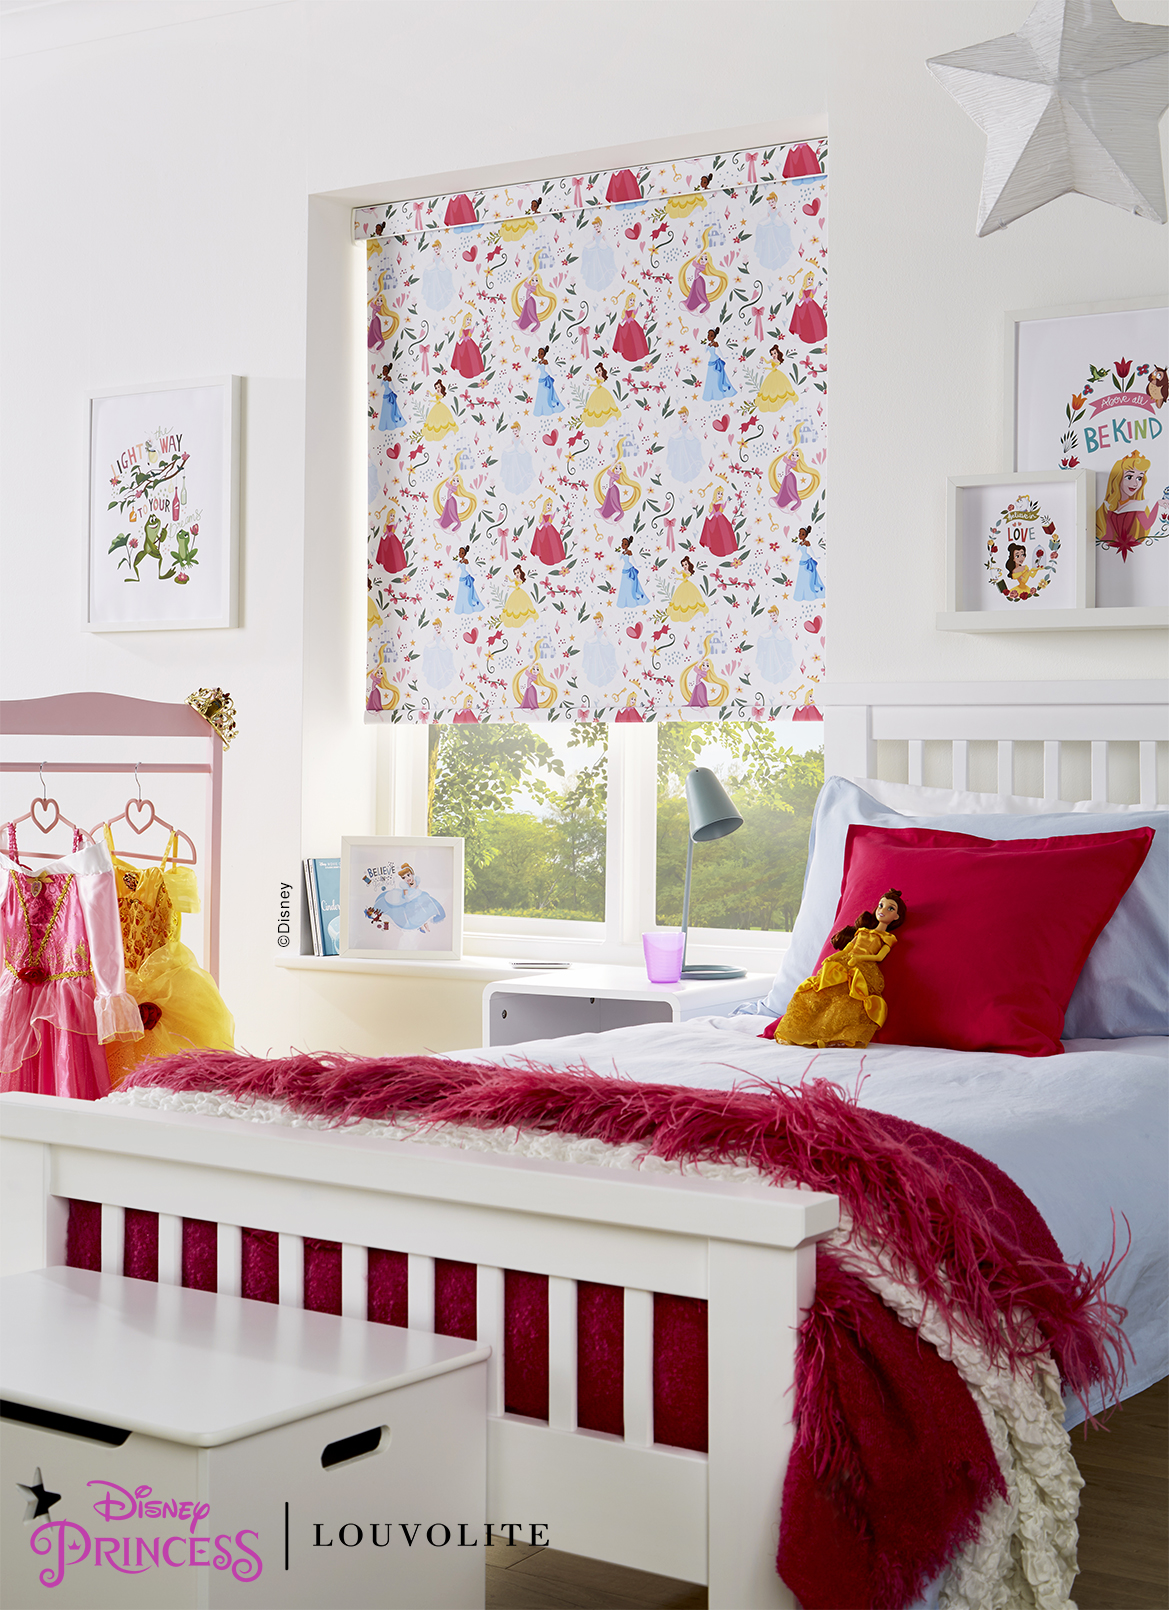 Disney Princess Bed Room Ready To Hang Curtains Window Blinds